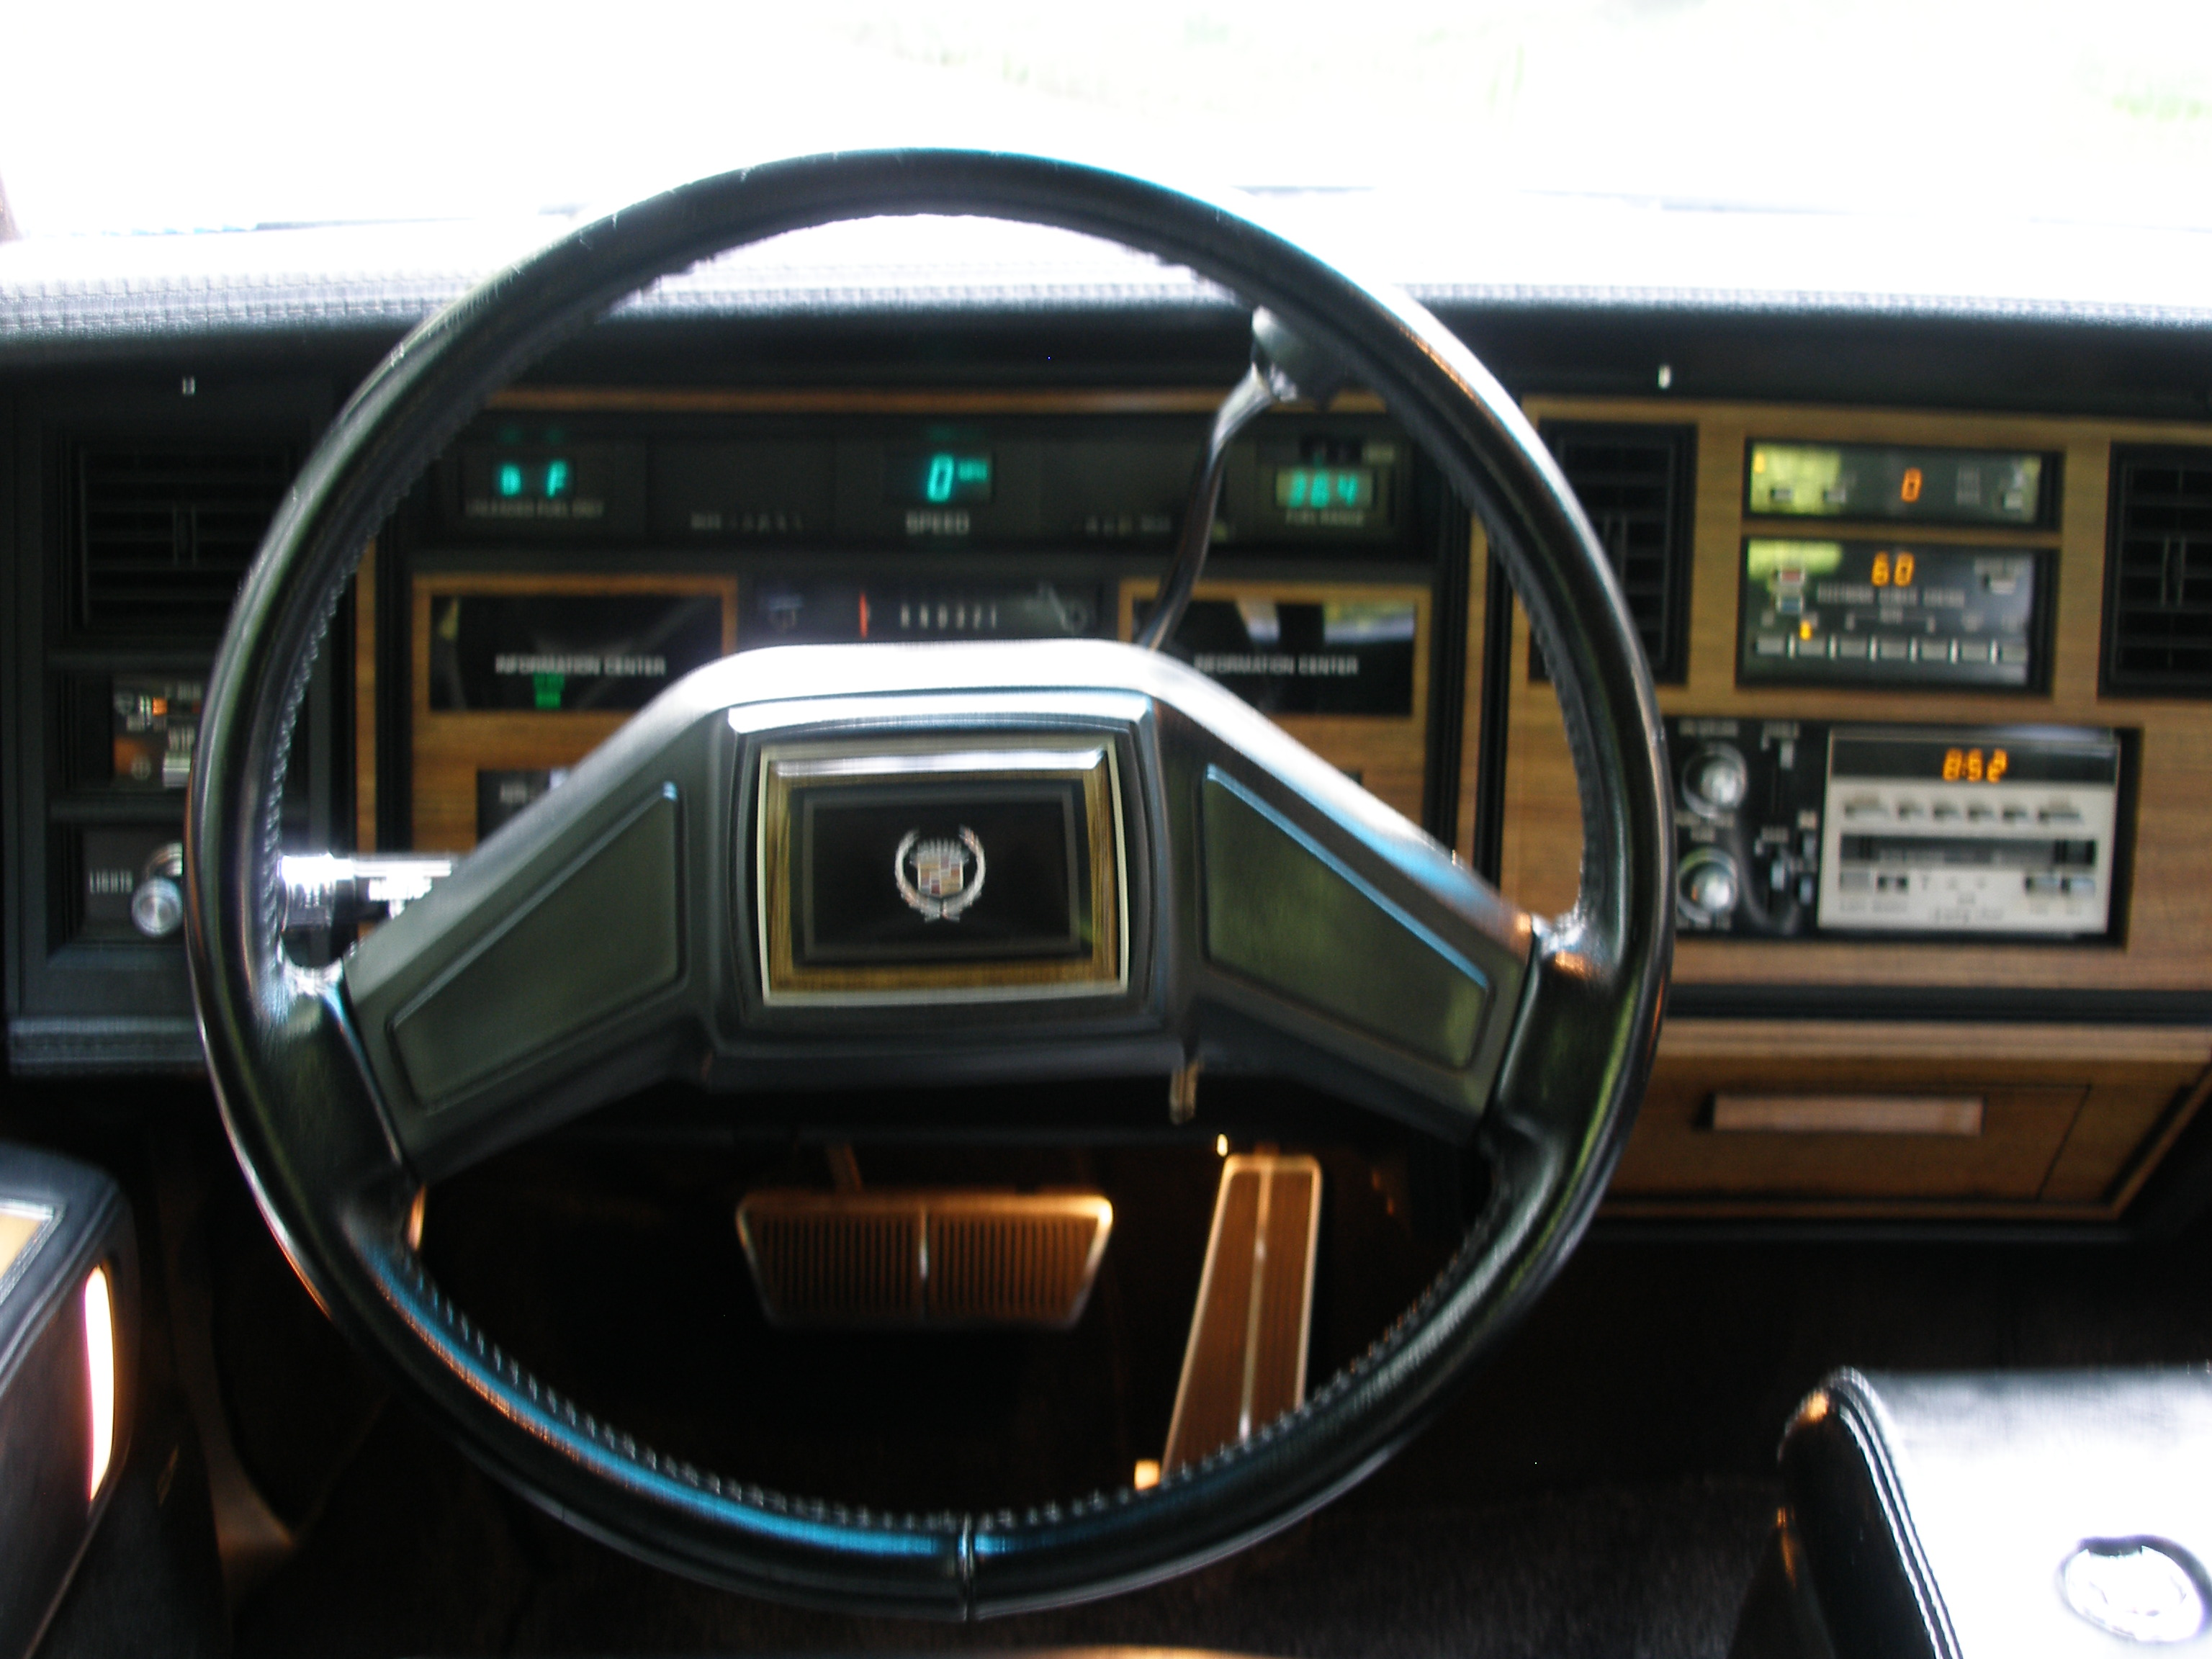 1984 Cadillac Seville Information And Photos Momentcar